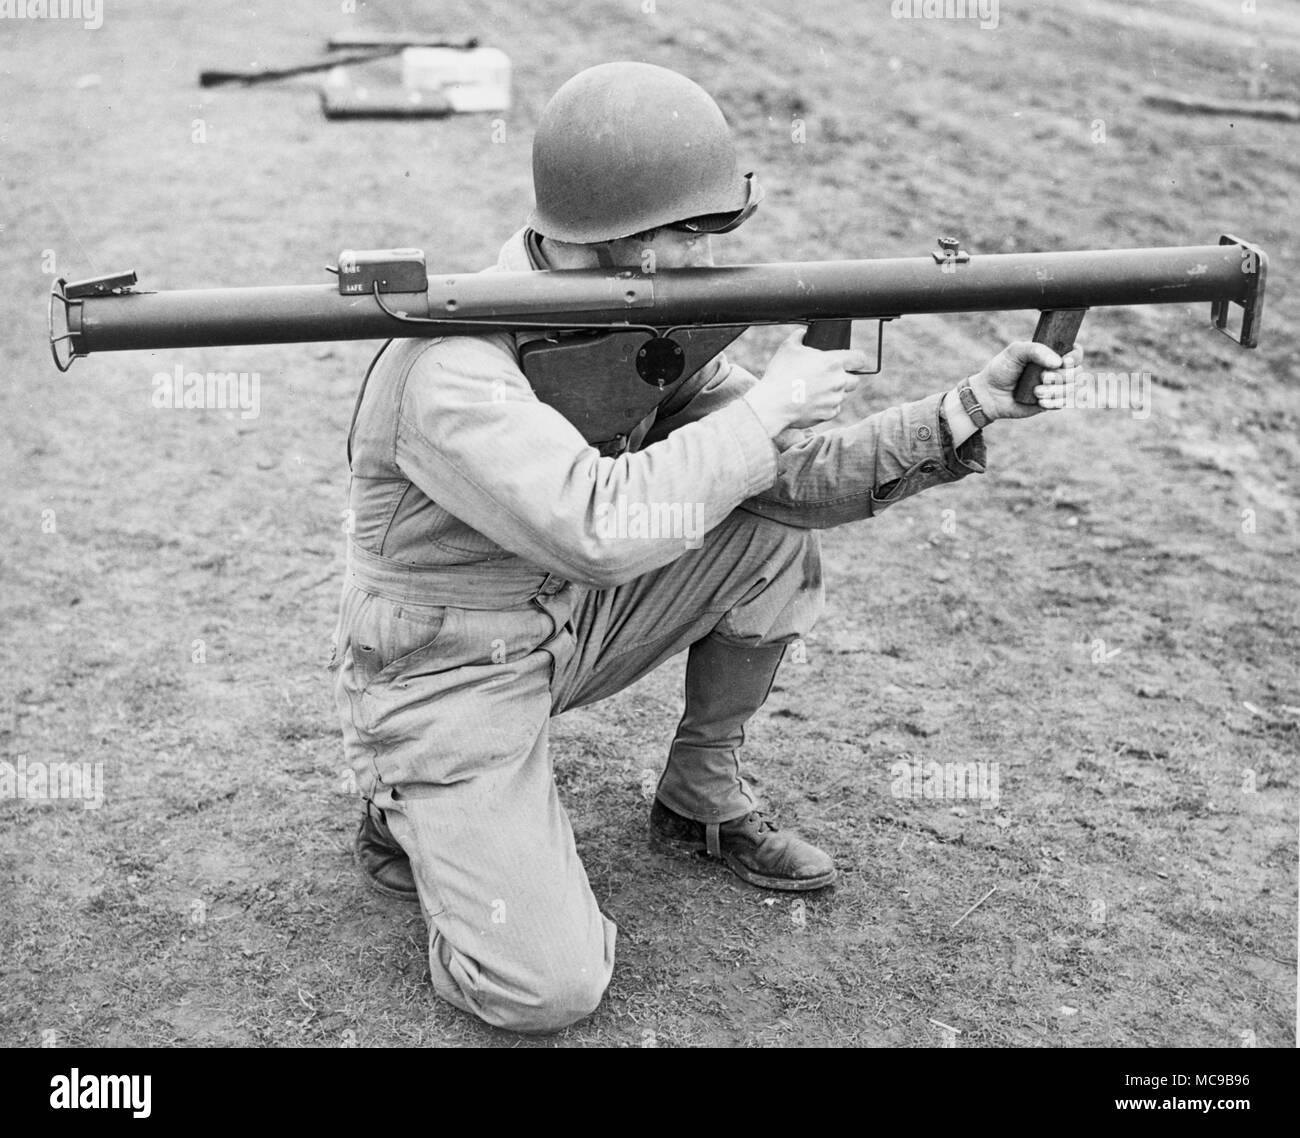 Bazooka, Soldier holding an M1 'Bazooka'. Portable recoilless anti-tank rocket launcher weapon, widely fielded by the United States Army. - Stock Image